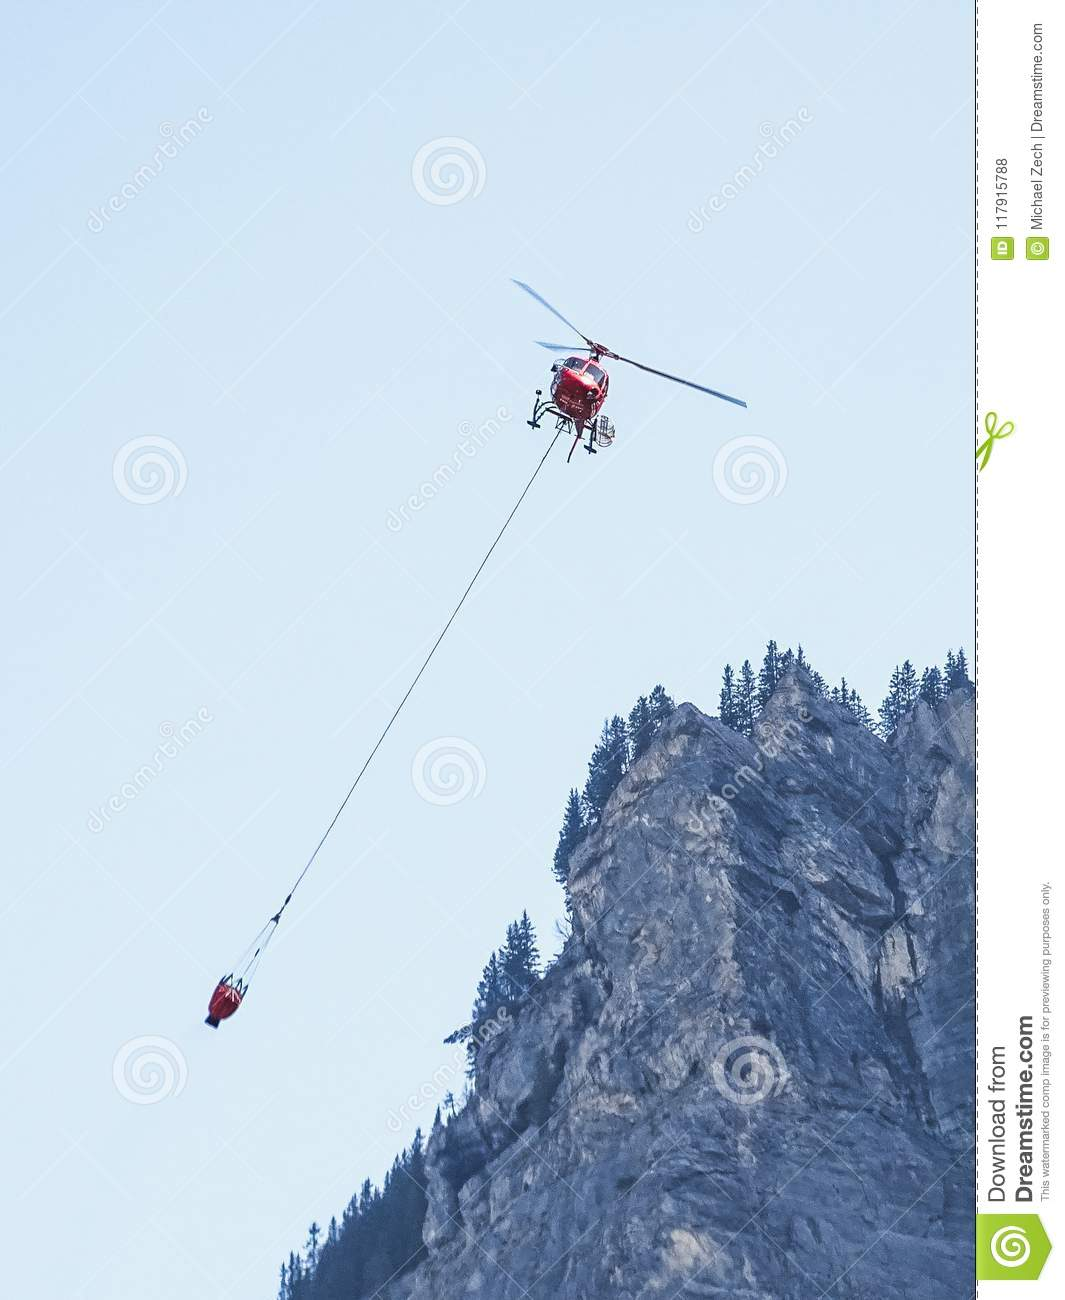 Fire helicopter with water tank in the air near kandersteg